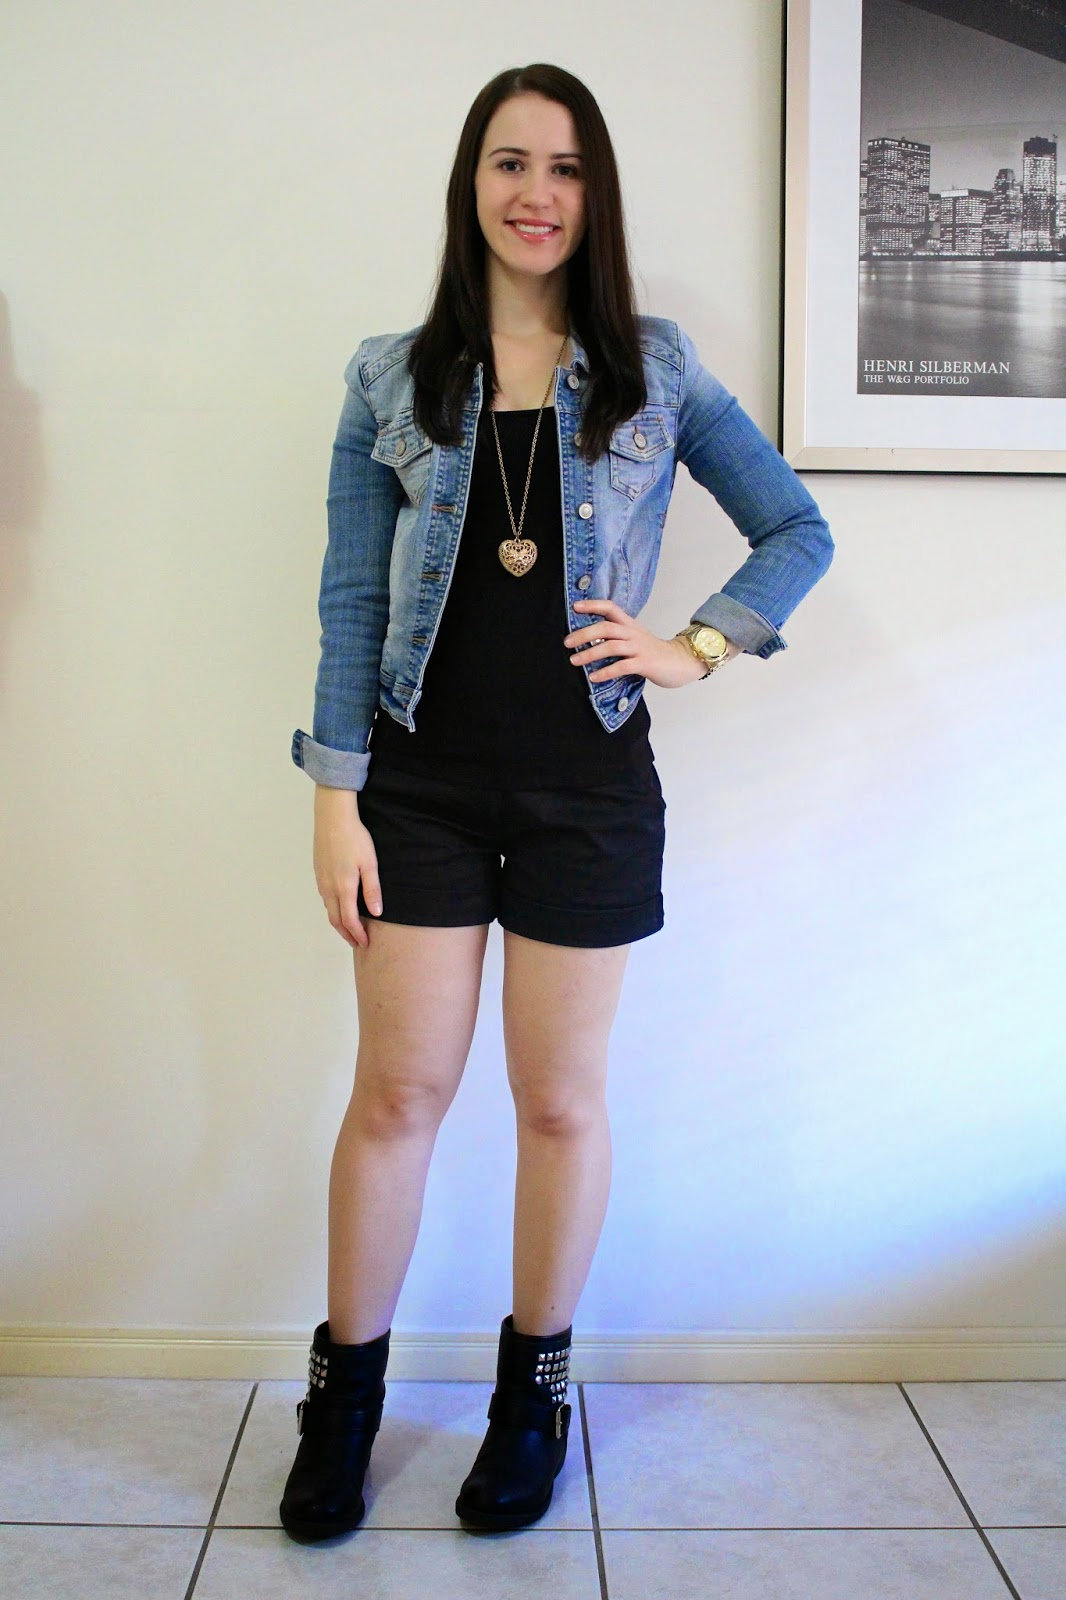 Black tailored shorts, black singlet, black studded biker boots, denim jacket, gold michael kors watch, gold heart long necklace, everyday outfit, petite outfit, fall outfit, autumn outfit, spring outfit, all black outfit, college outfit, uni outfit